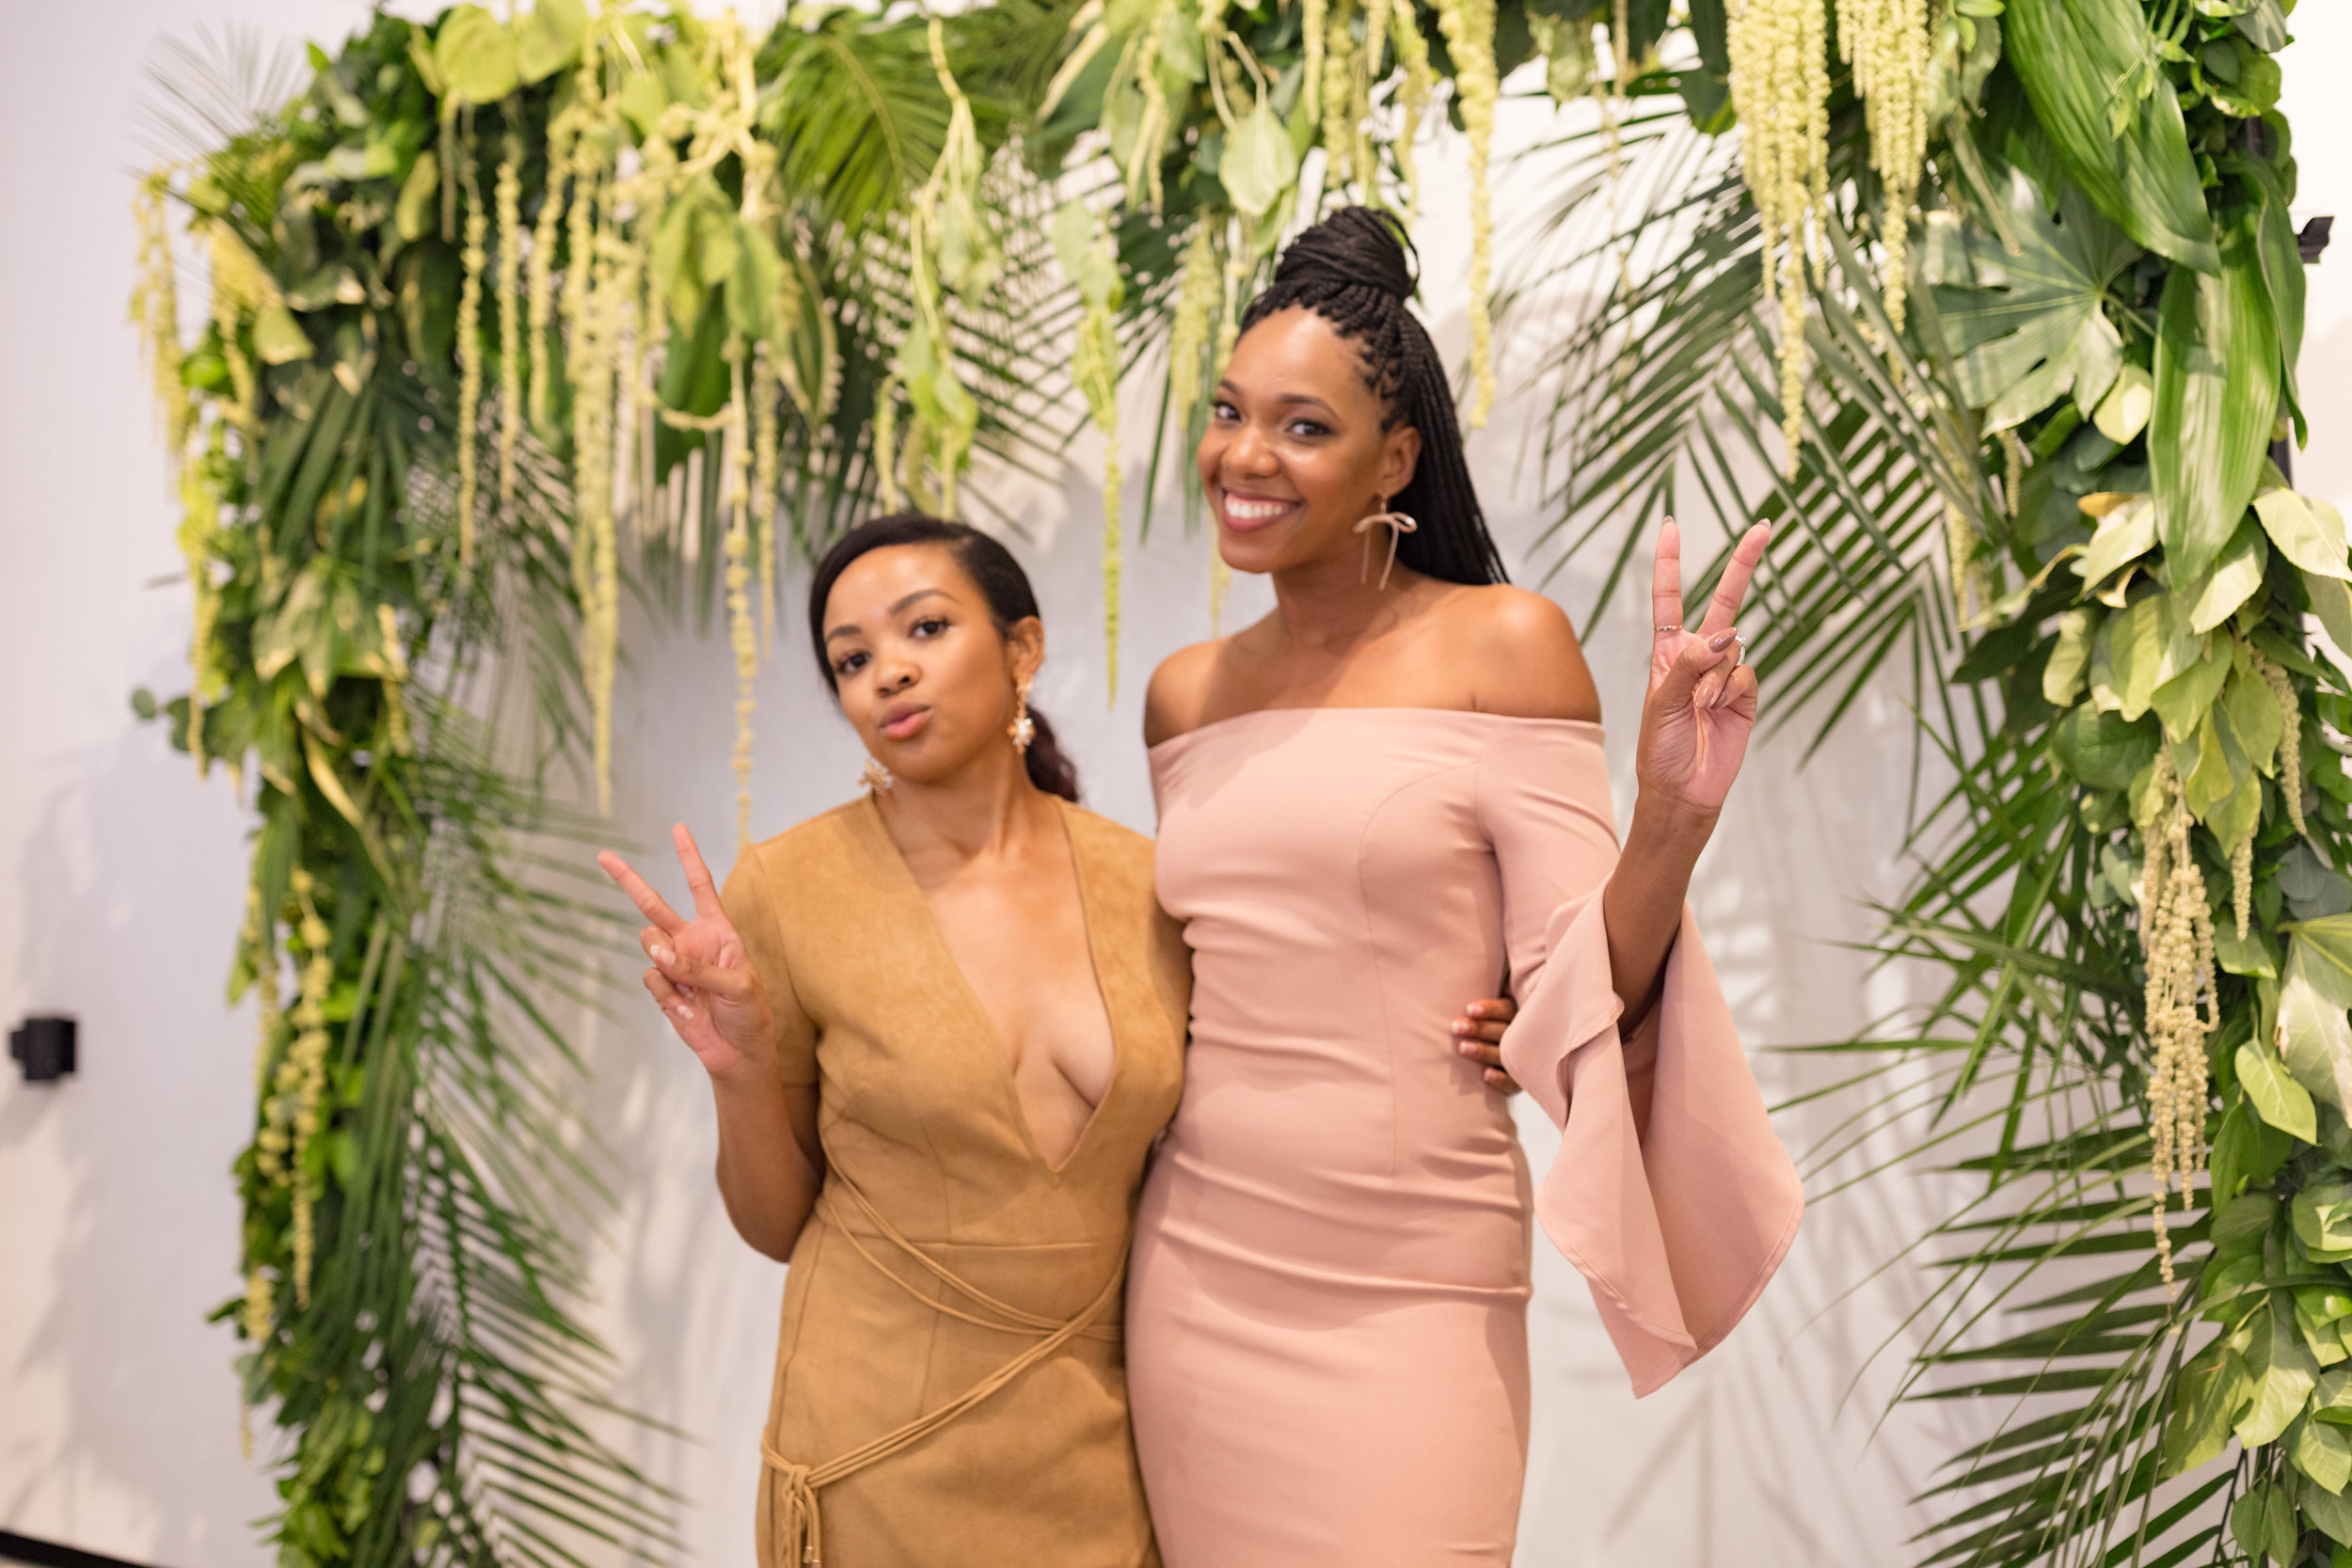 PBE founder, Brittany Brown, poses with Keyanna Sawyer-Jones, founder of Bleum Creative.